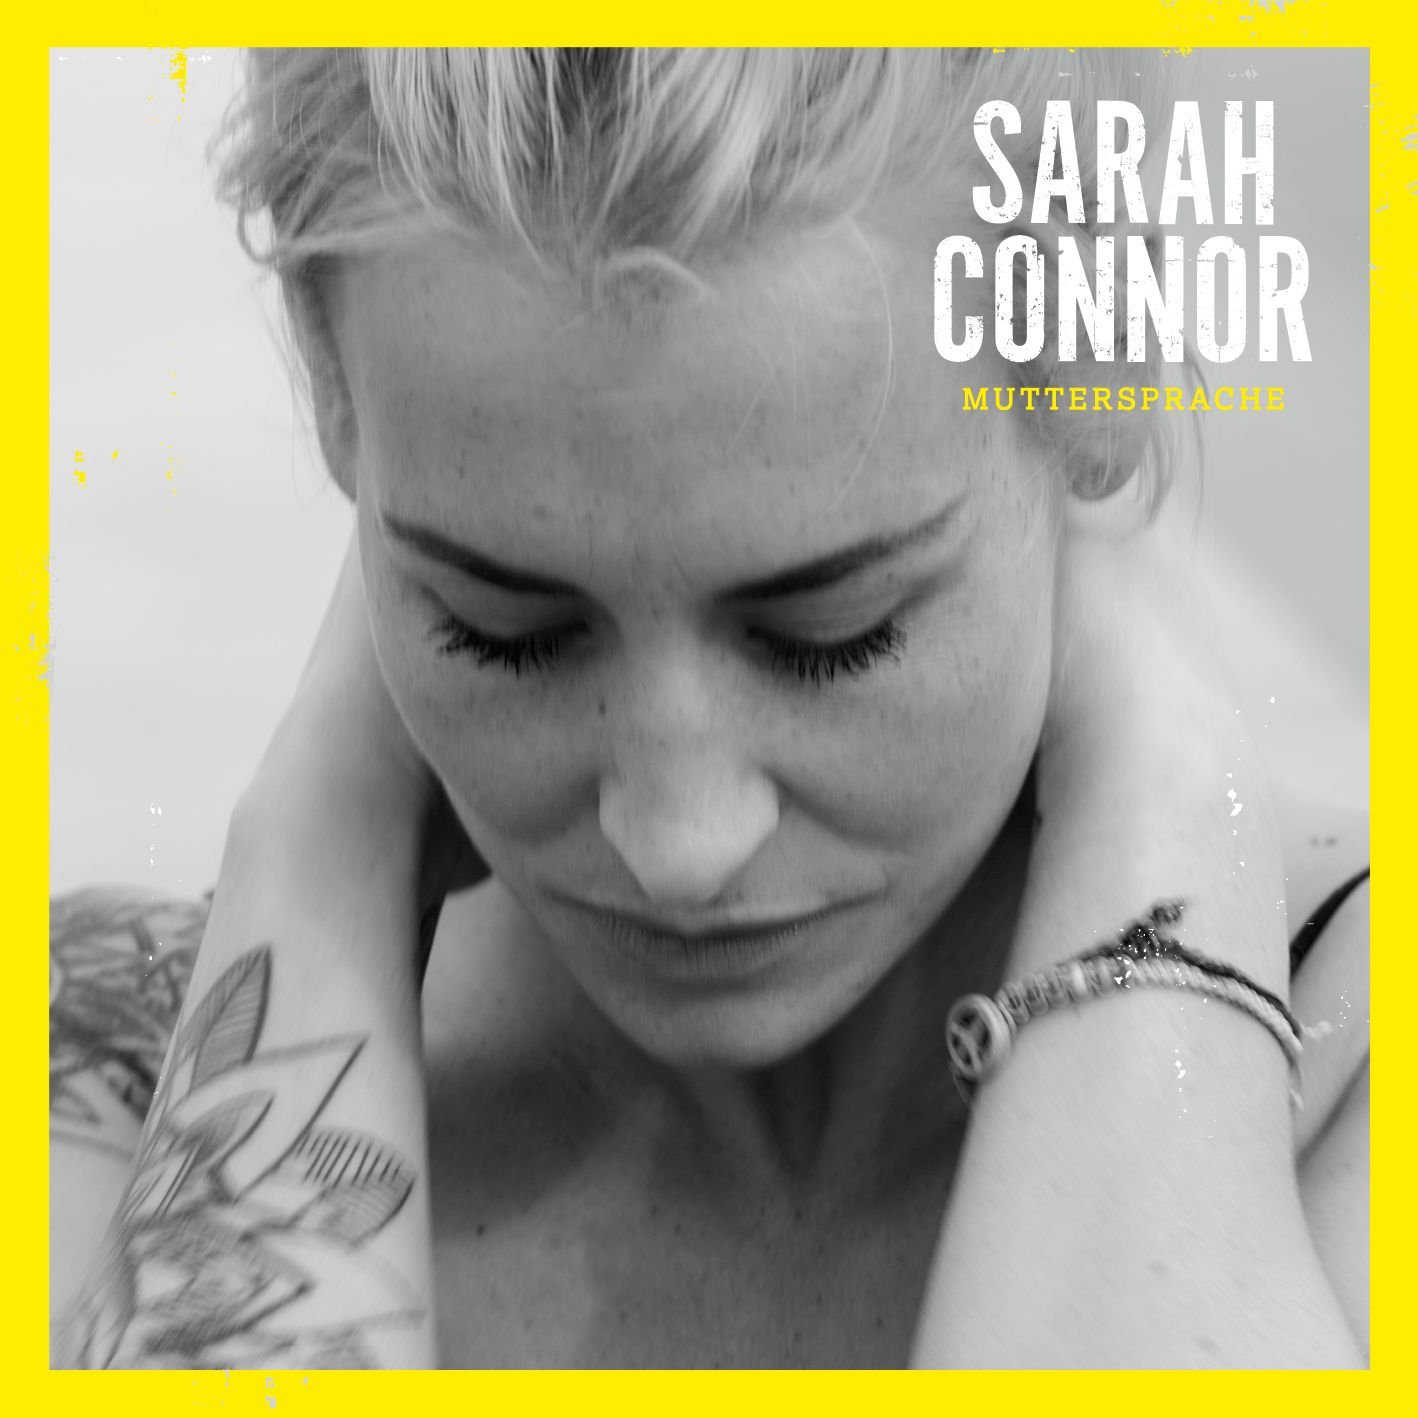 Muttersprache Sarah Connor CD MP3 amazon